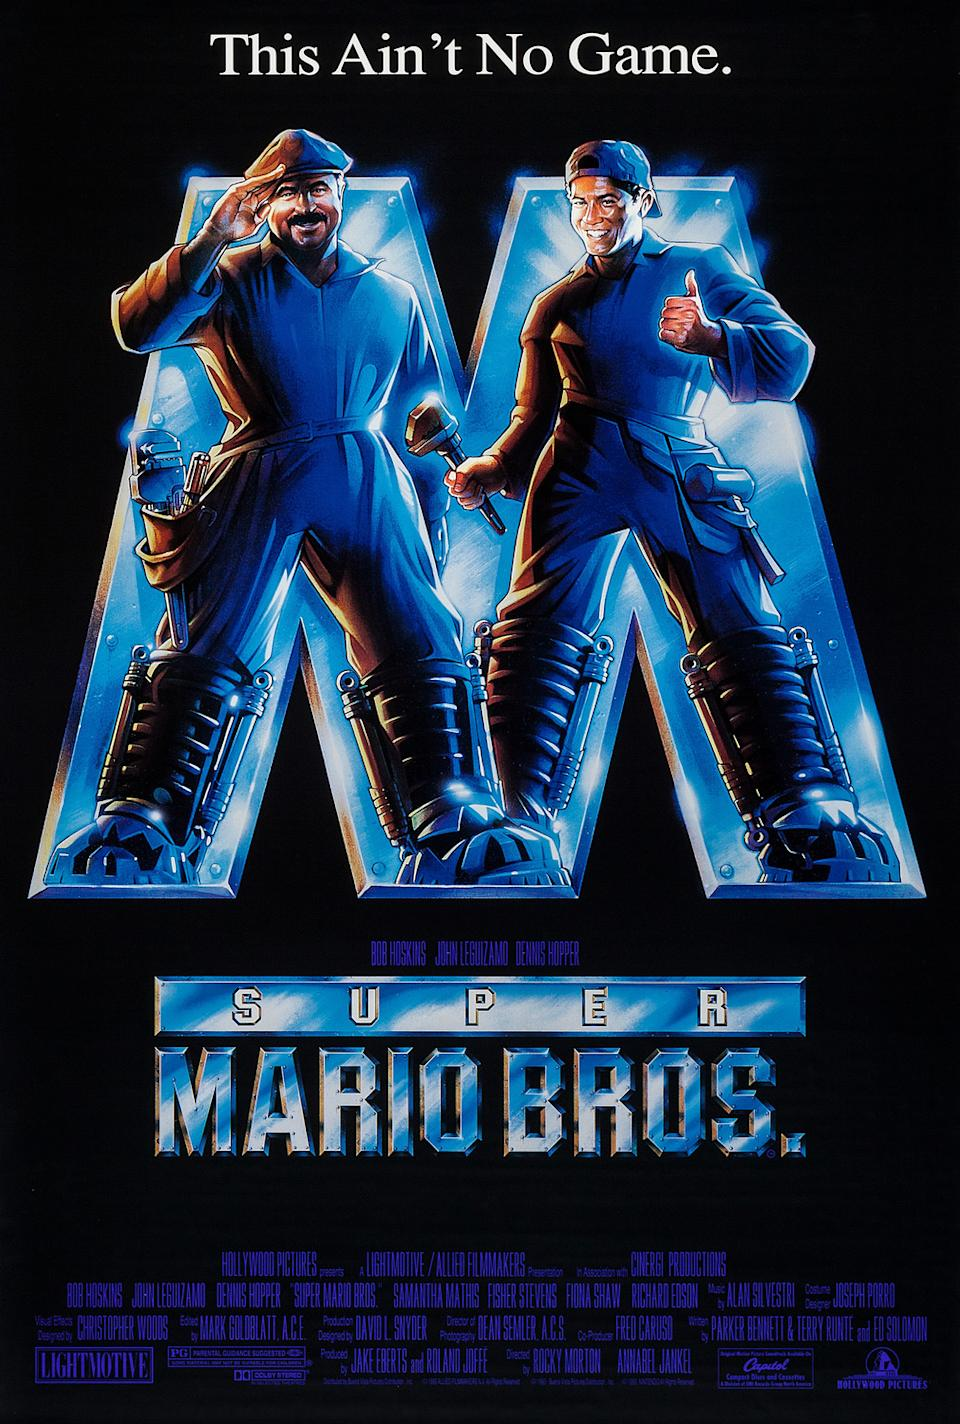 The poster for Super Mario Bros.